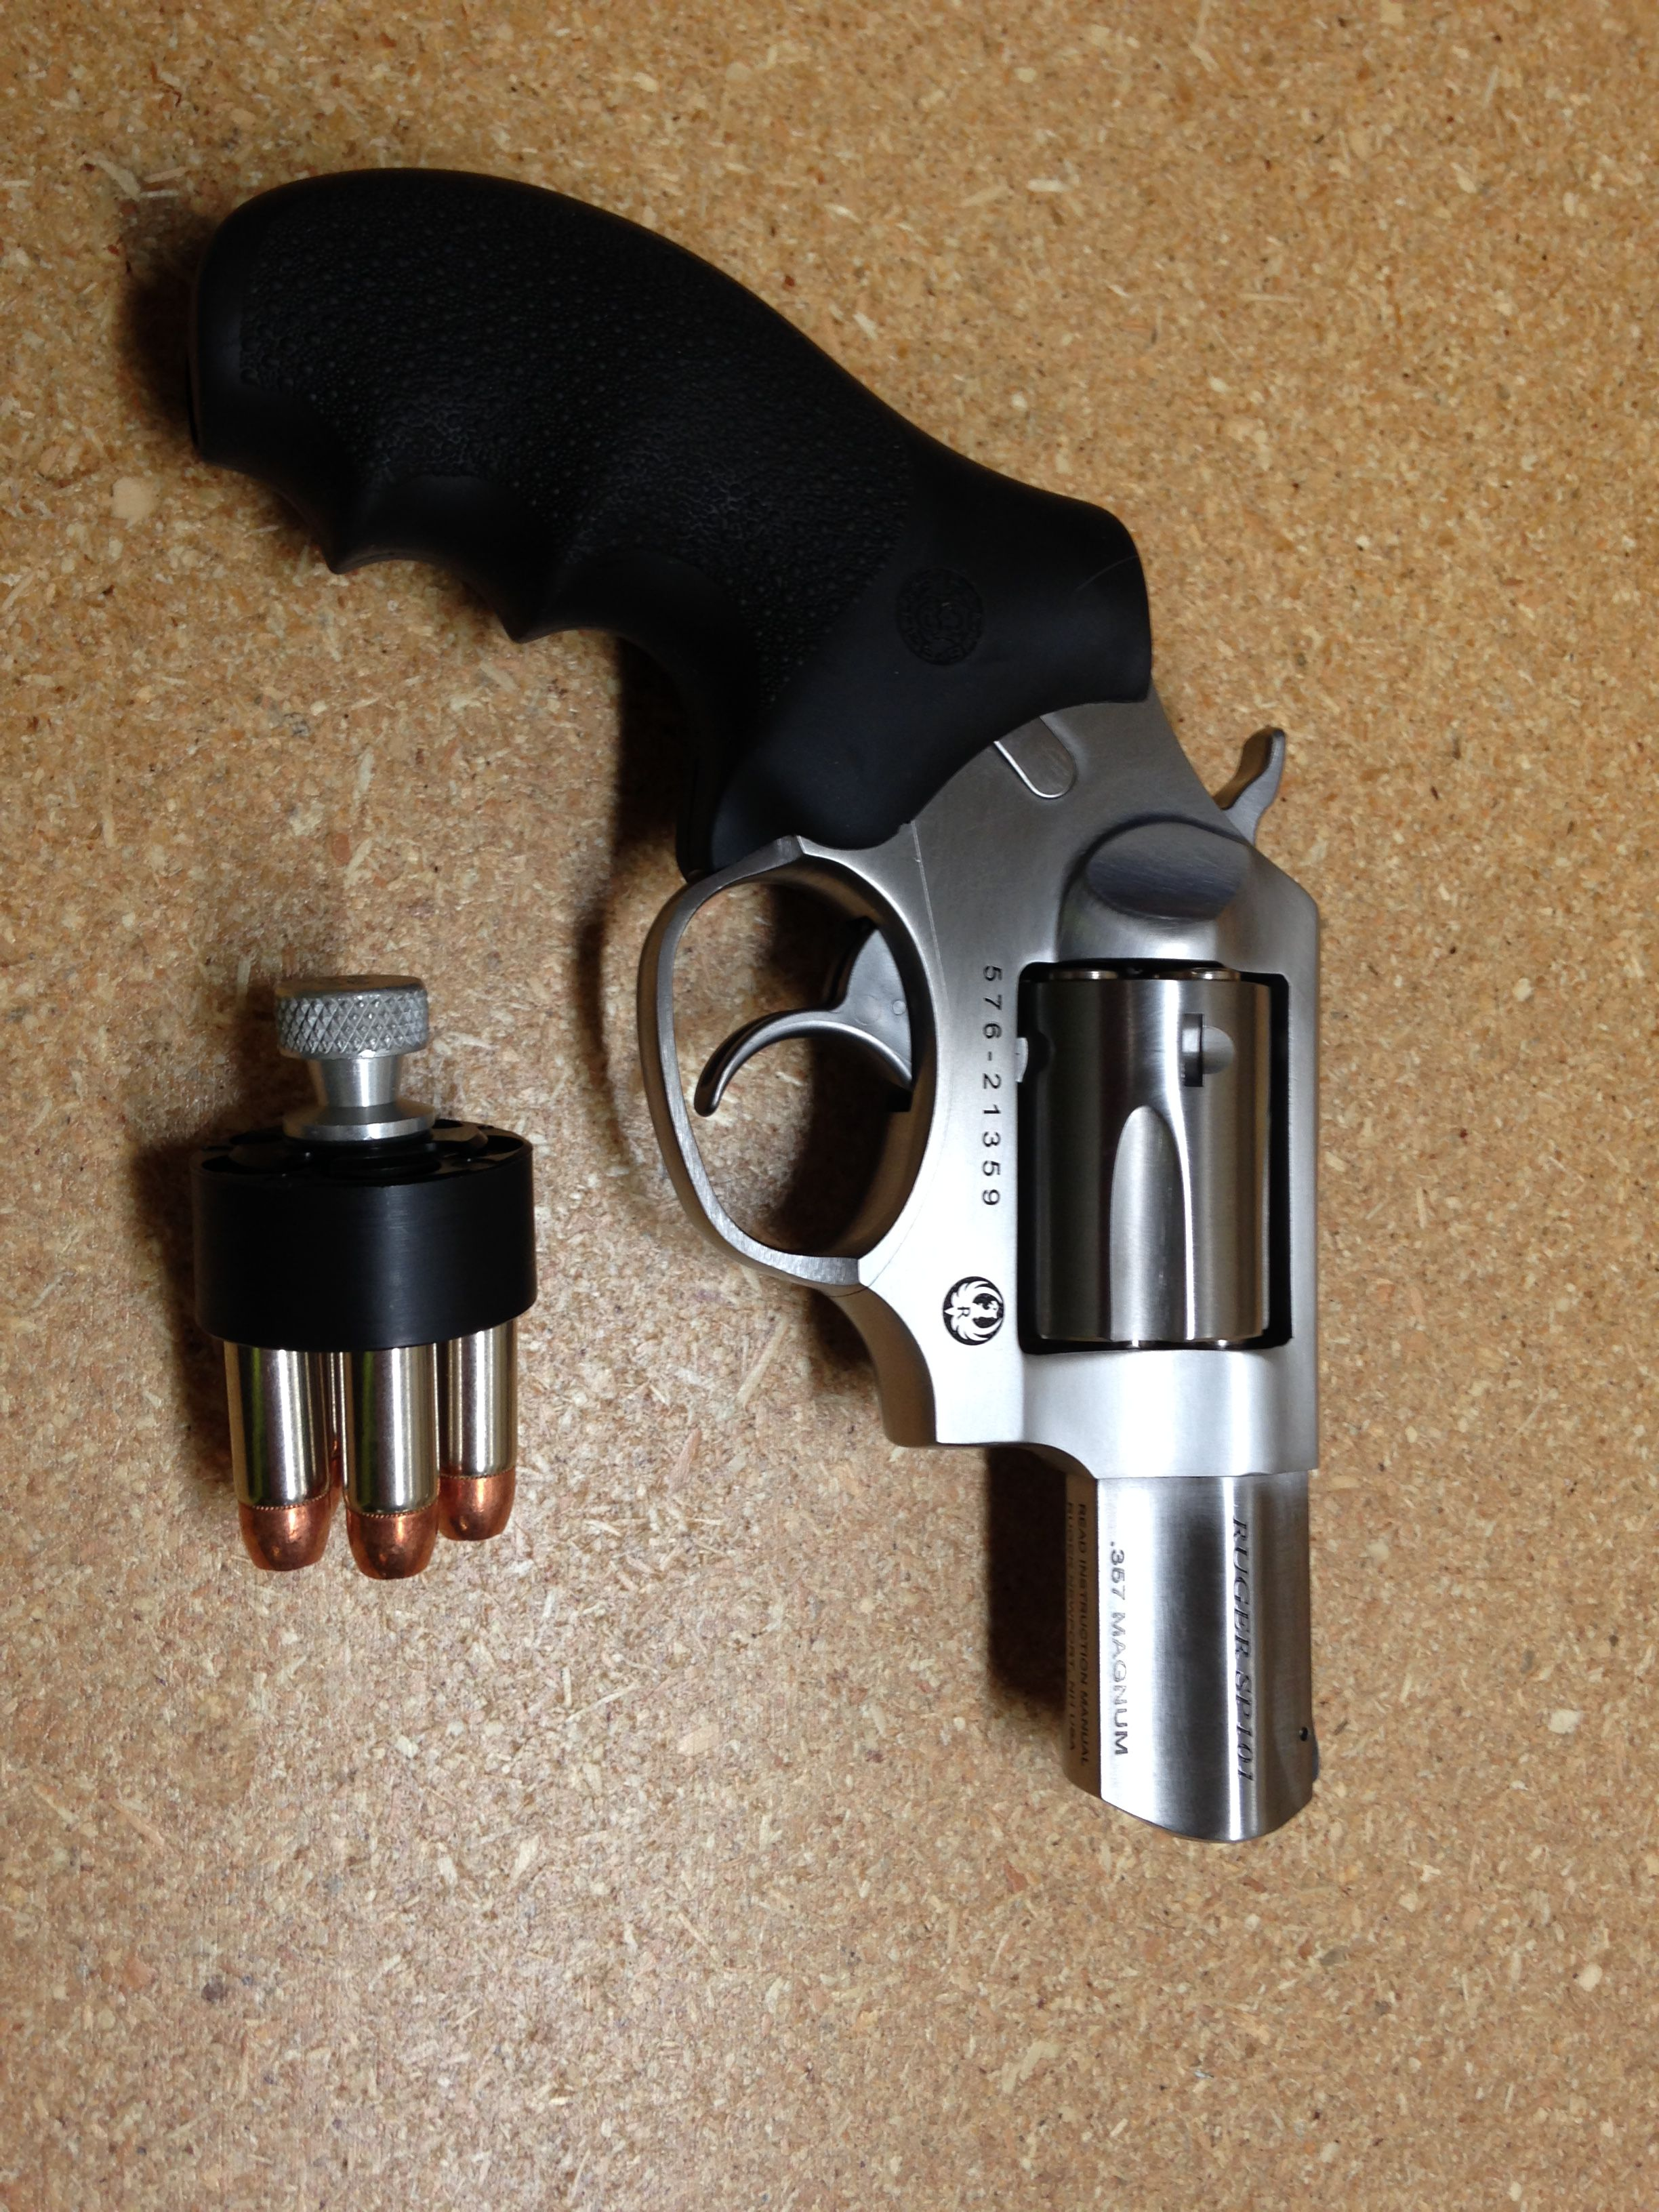 My latest investment   Ruger SP 101 in  357 Magnum   plus Hogue